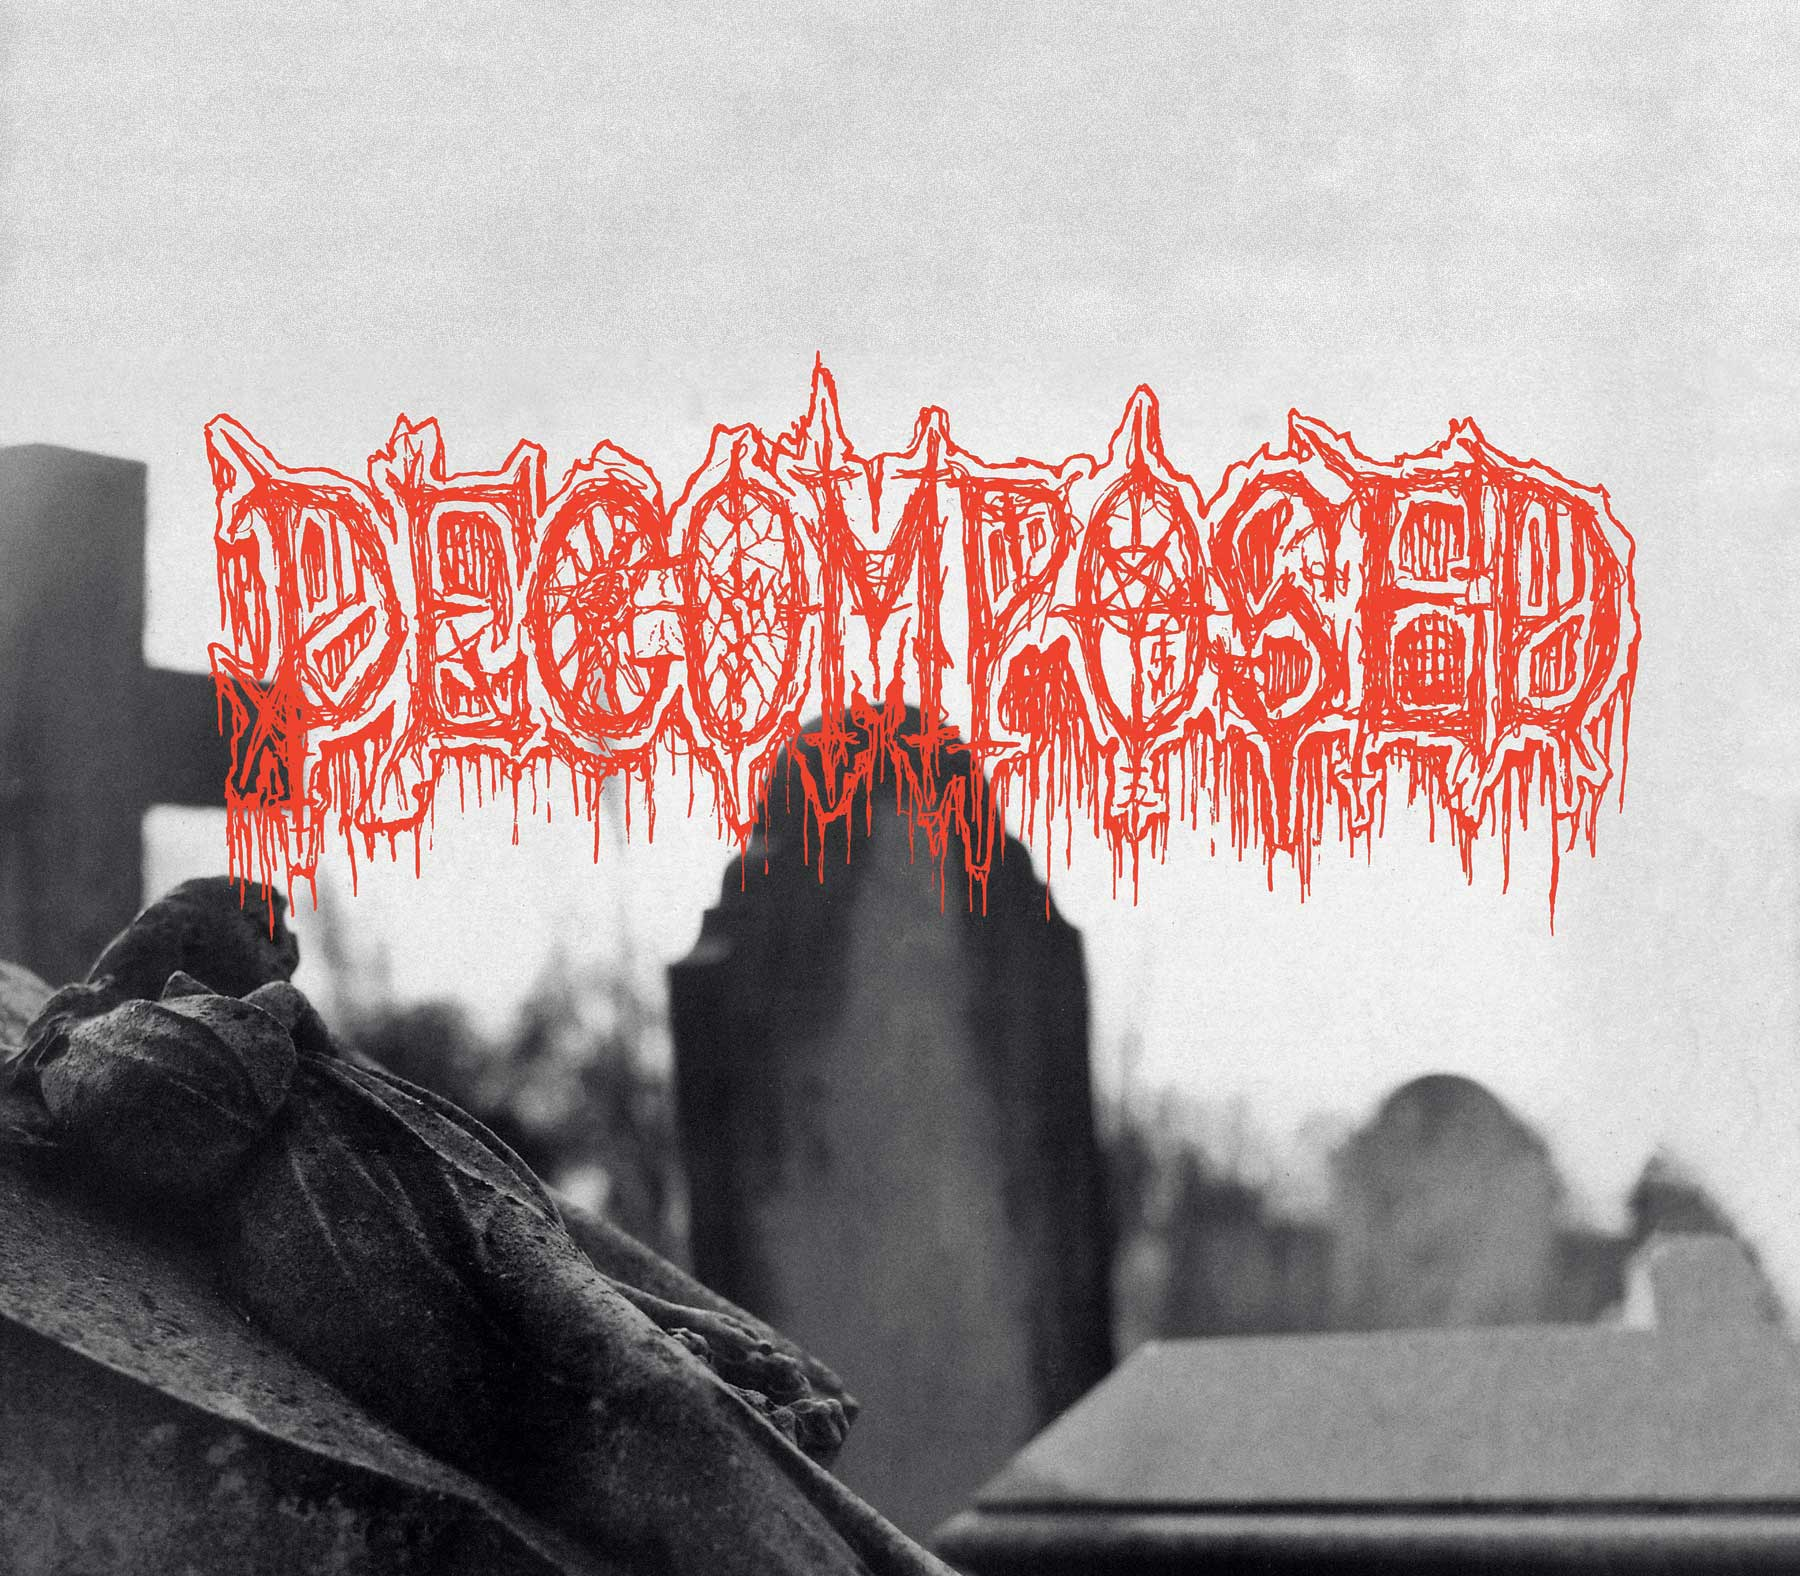 Decomposed Funeral Obsession